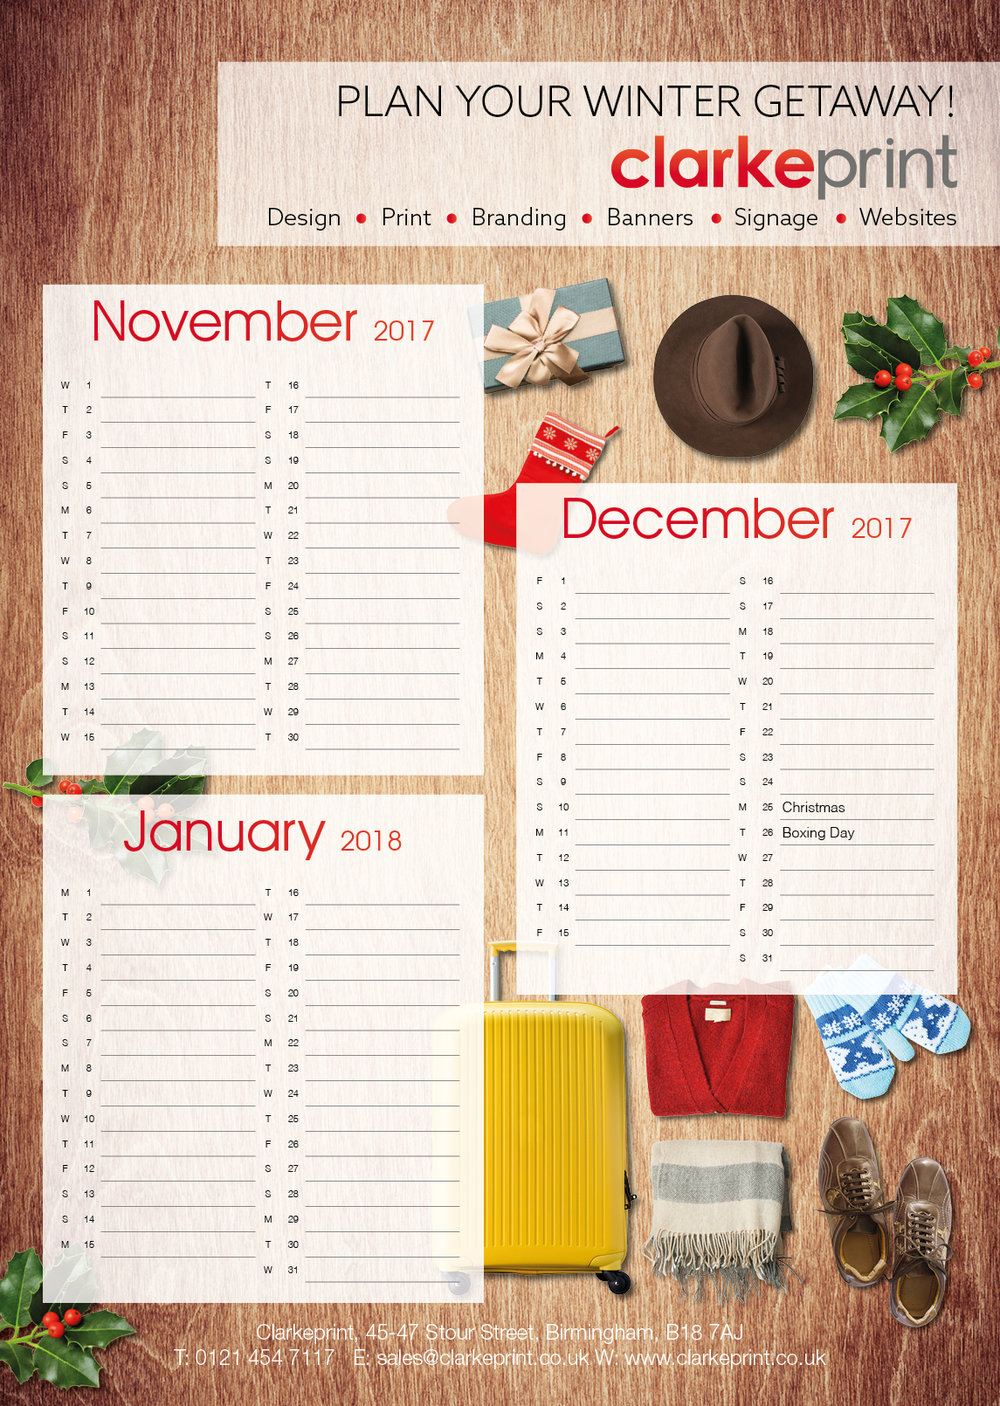 Clarkeprint Winter Holiday Plan.jpg